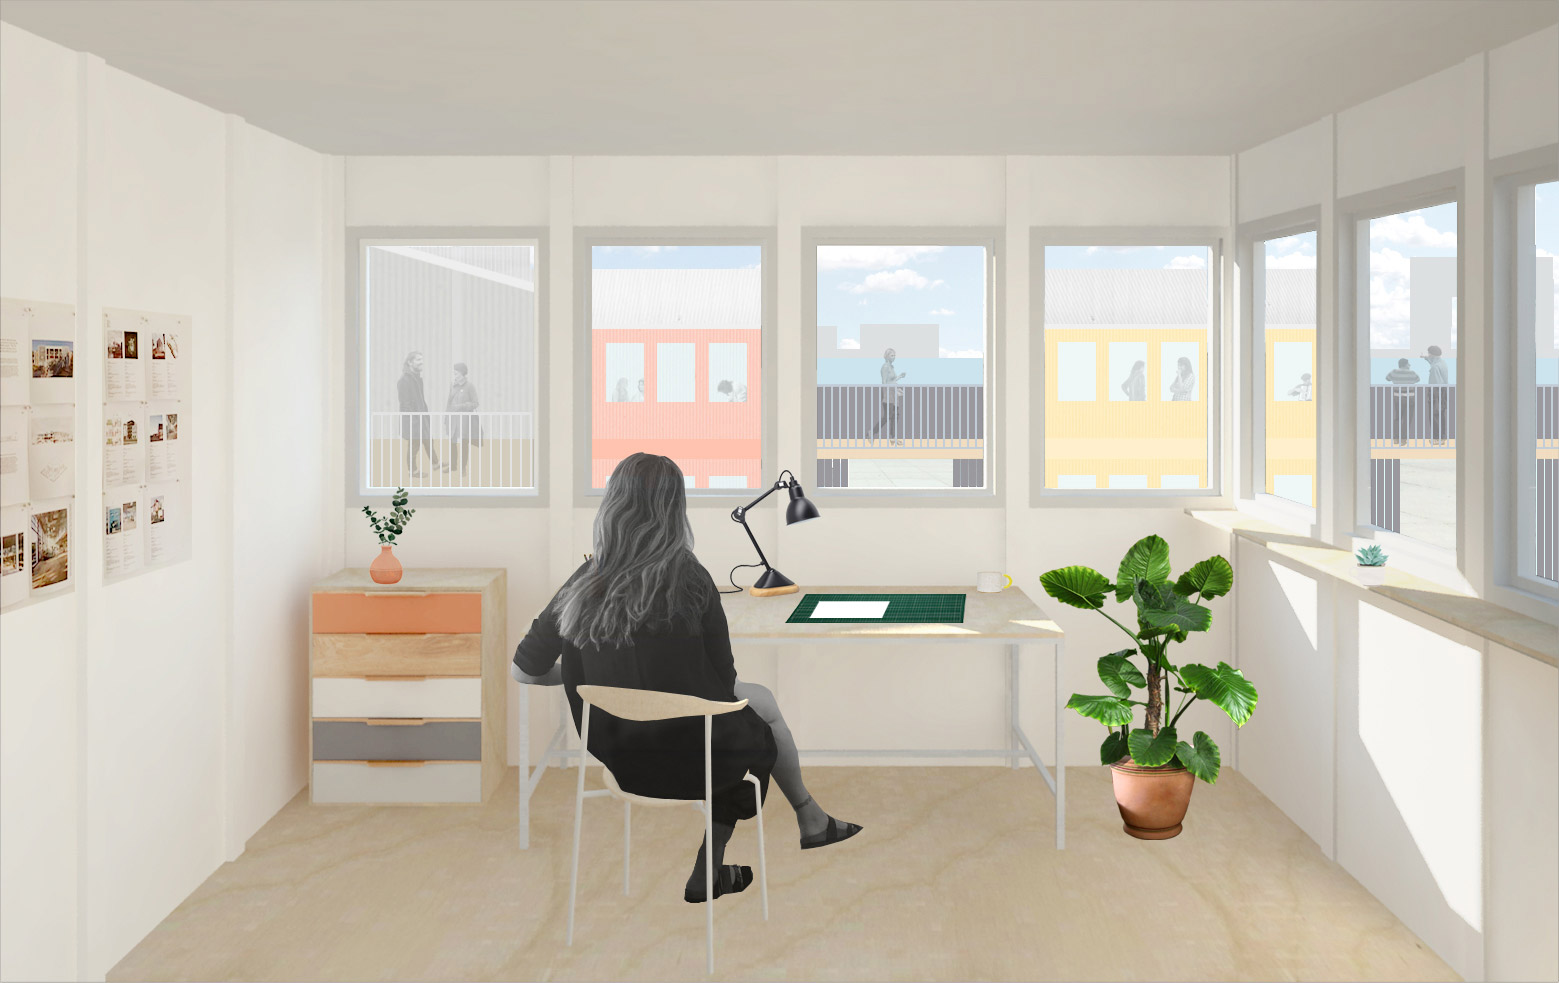 collage of the interior of a studio at Treehouse NDSM showing a woman sitting behind a desk drawing